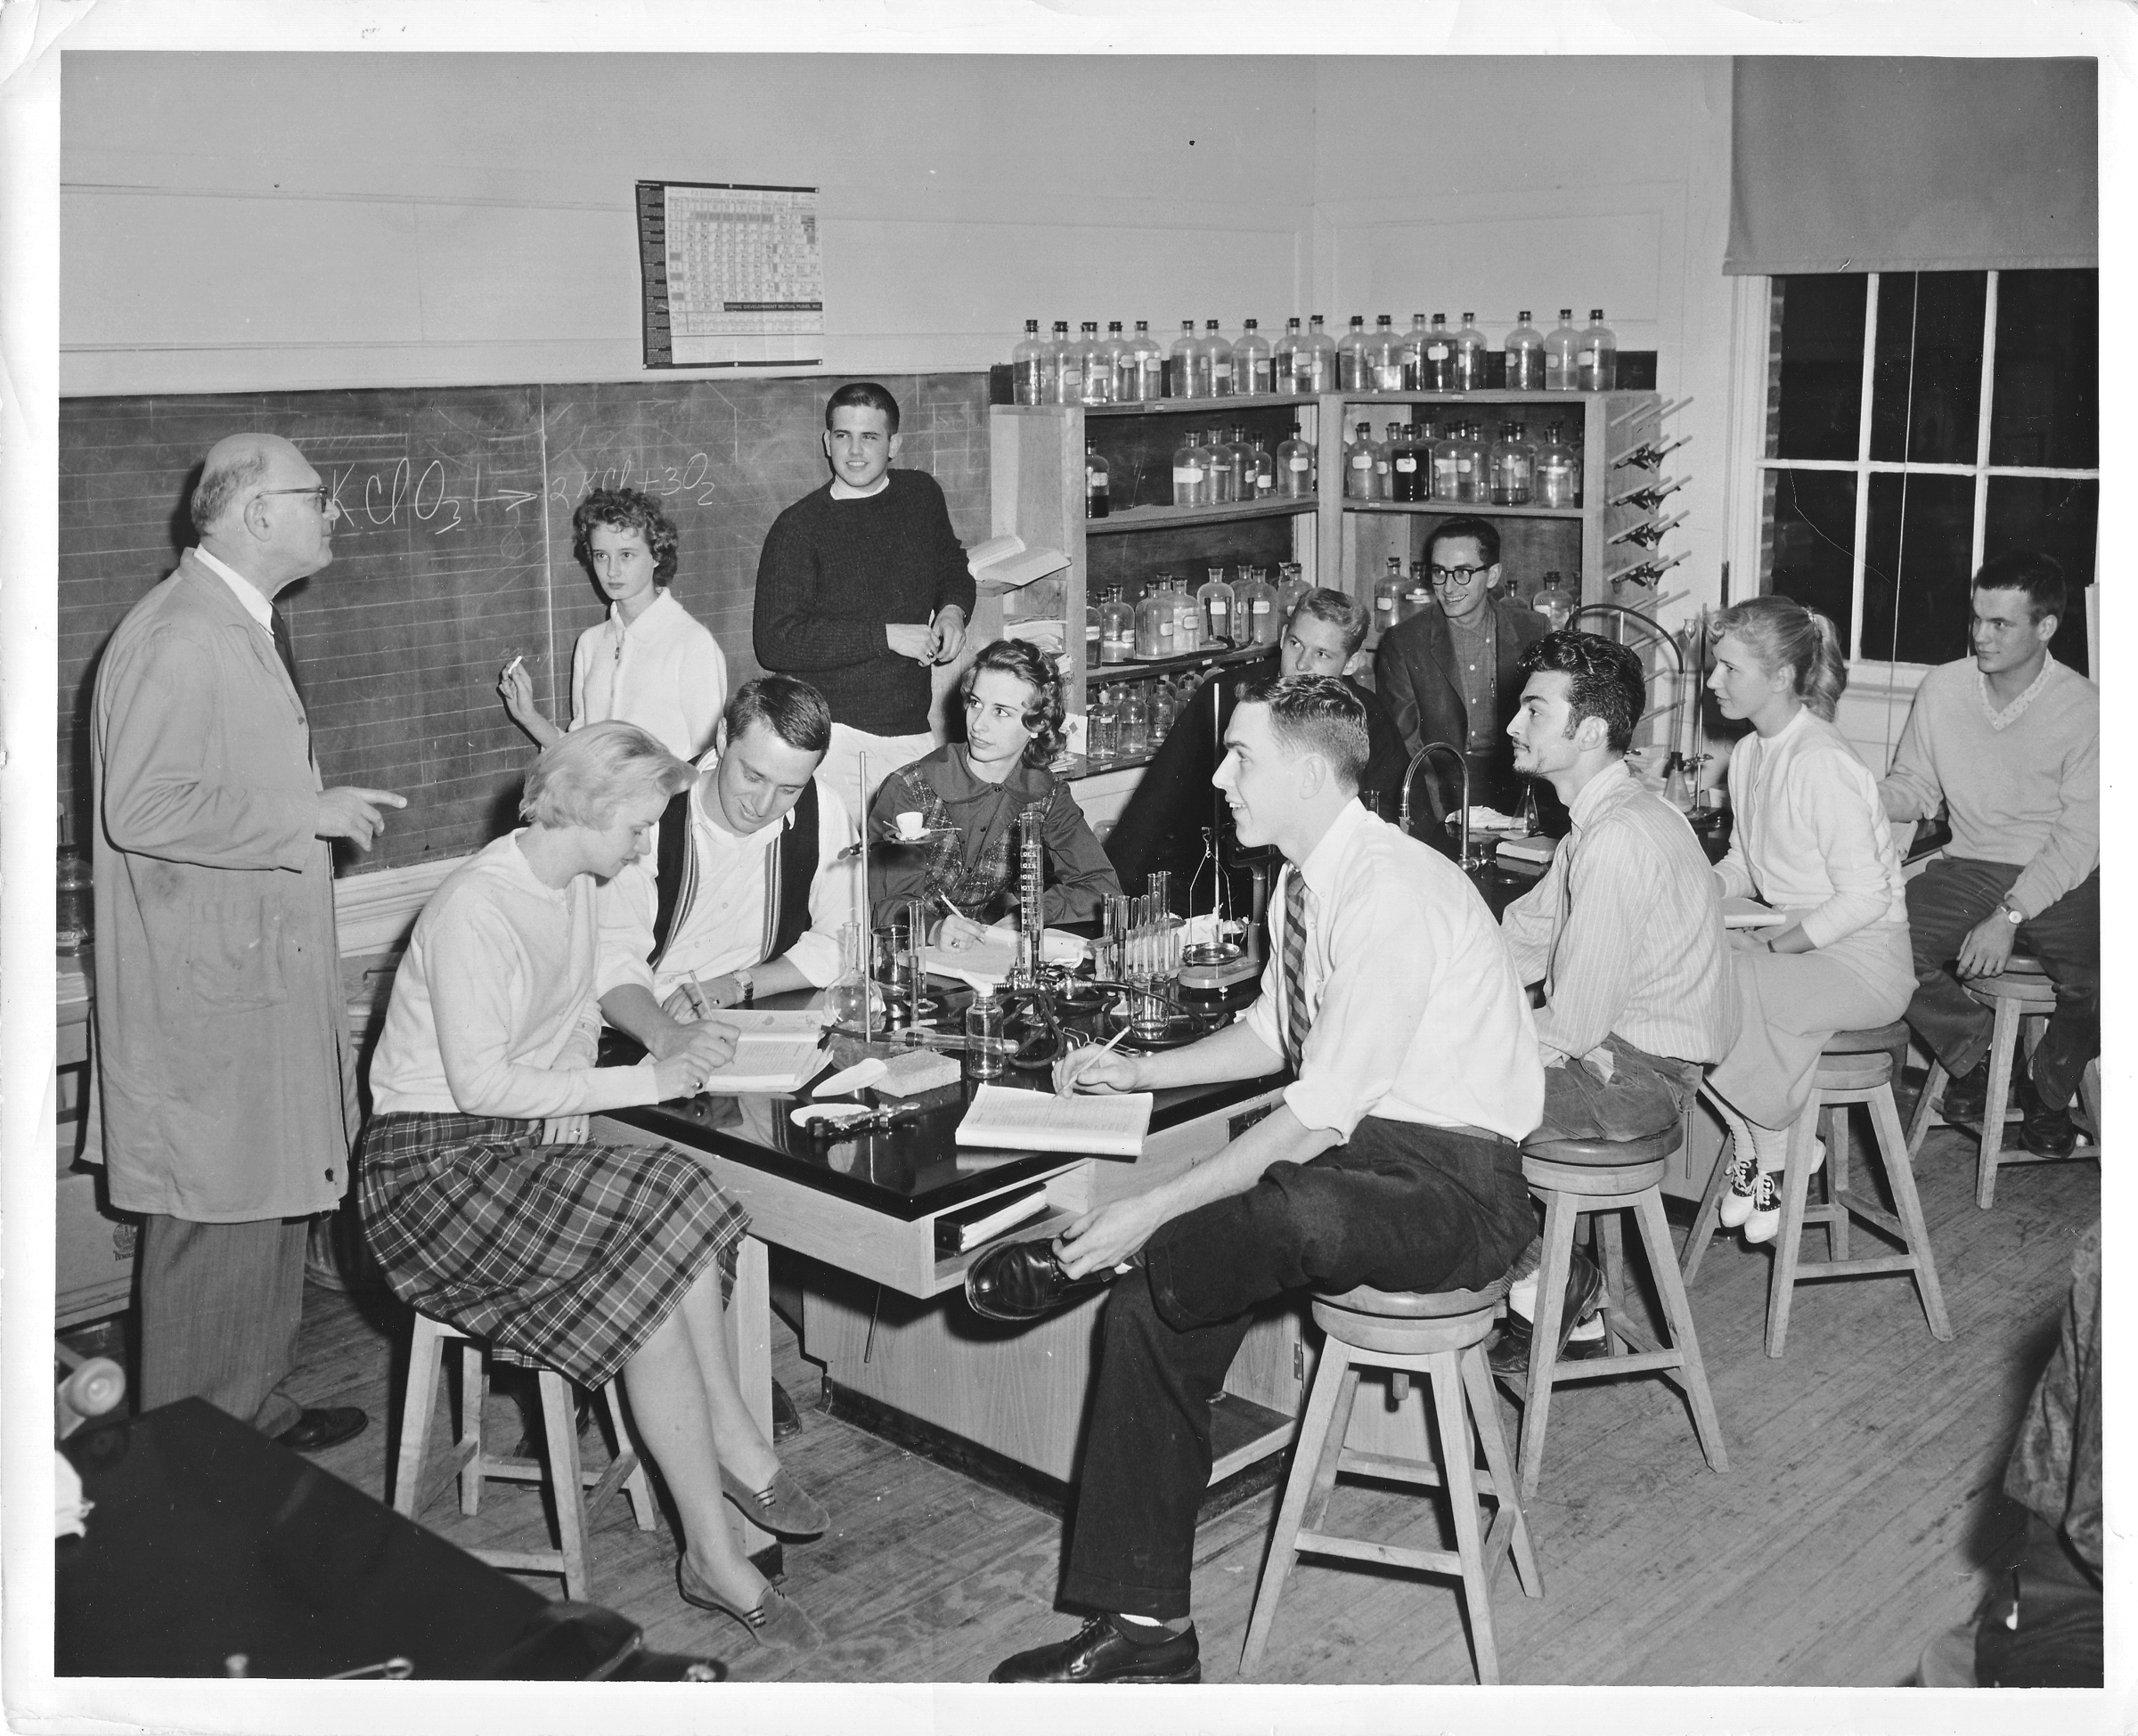 Laboratory, George Mason College, Bailey's Crossroads campus, 1963.